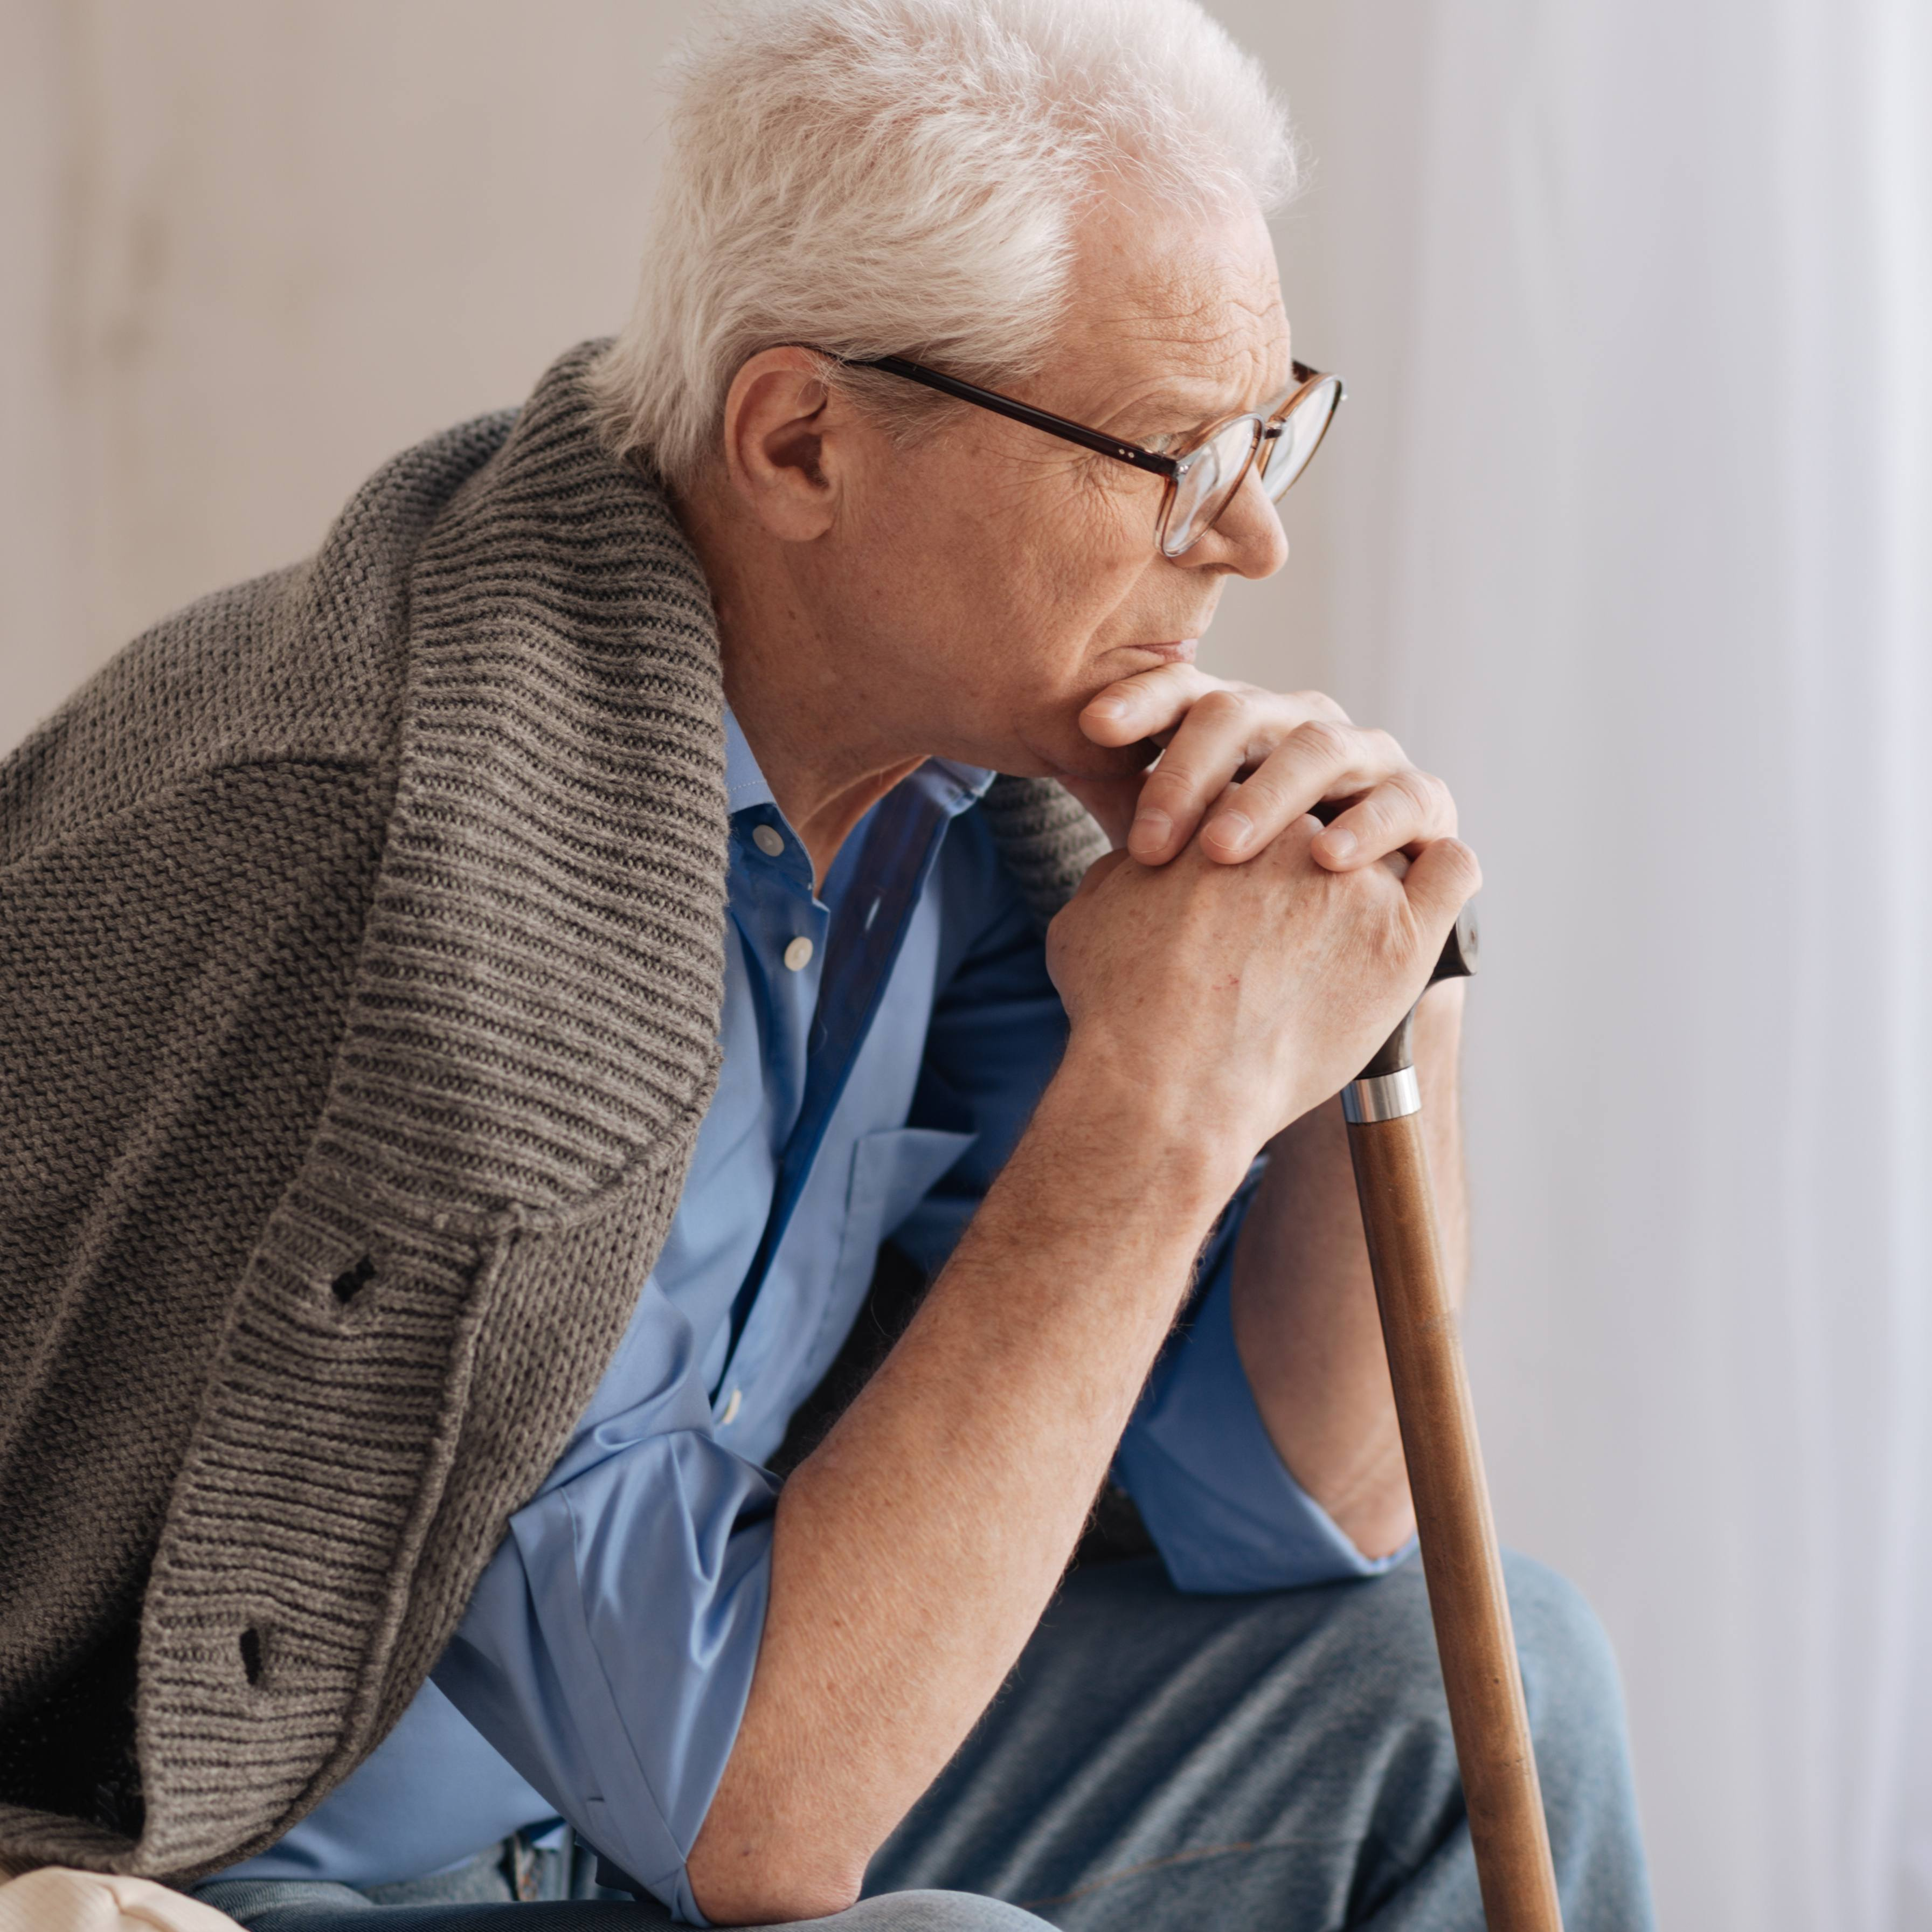 an older Caucasian man with glasses, leaning on a cane while sitting in a chair near a window and looking concerned, worried, thoughtful